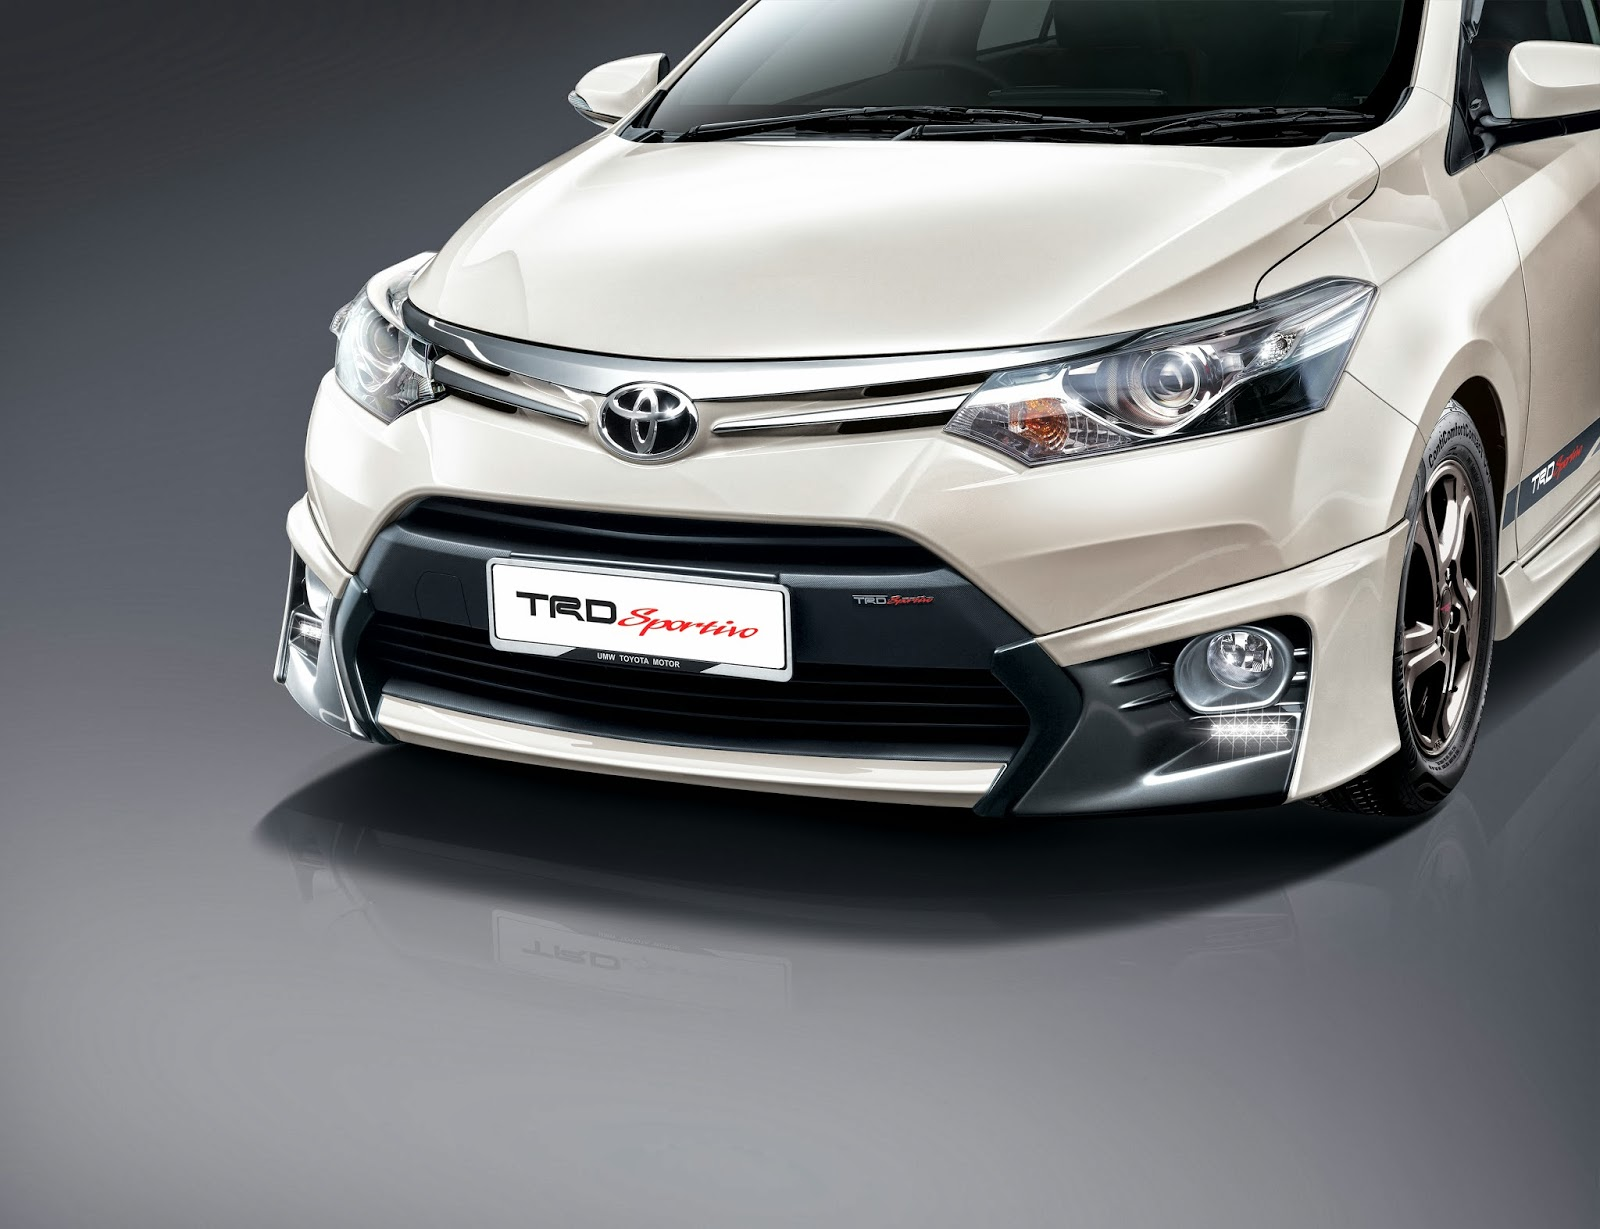 The all new toyota vios offers an intelligent packaging with a new flowing dynamic exterior design a more spacious cabin and an all new interior